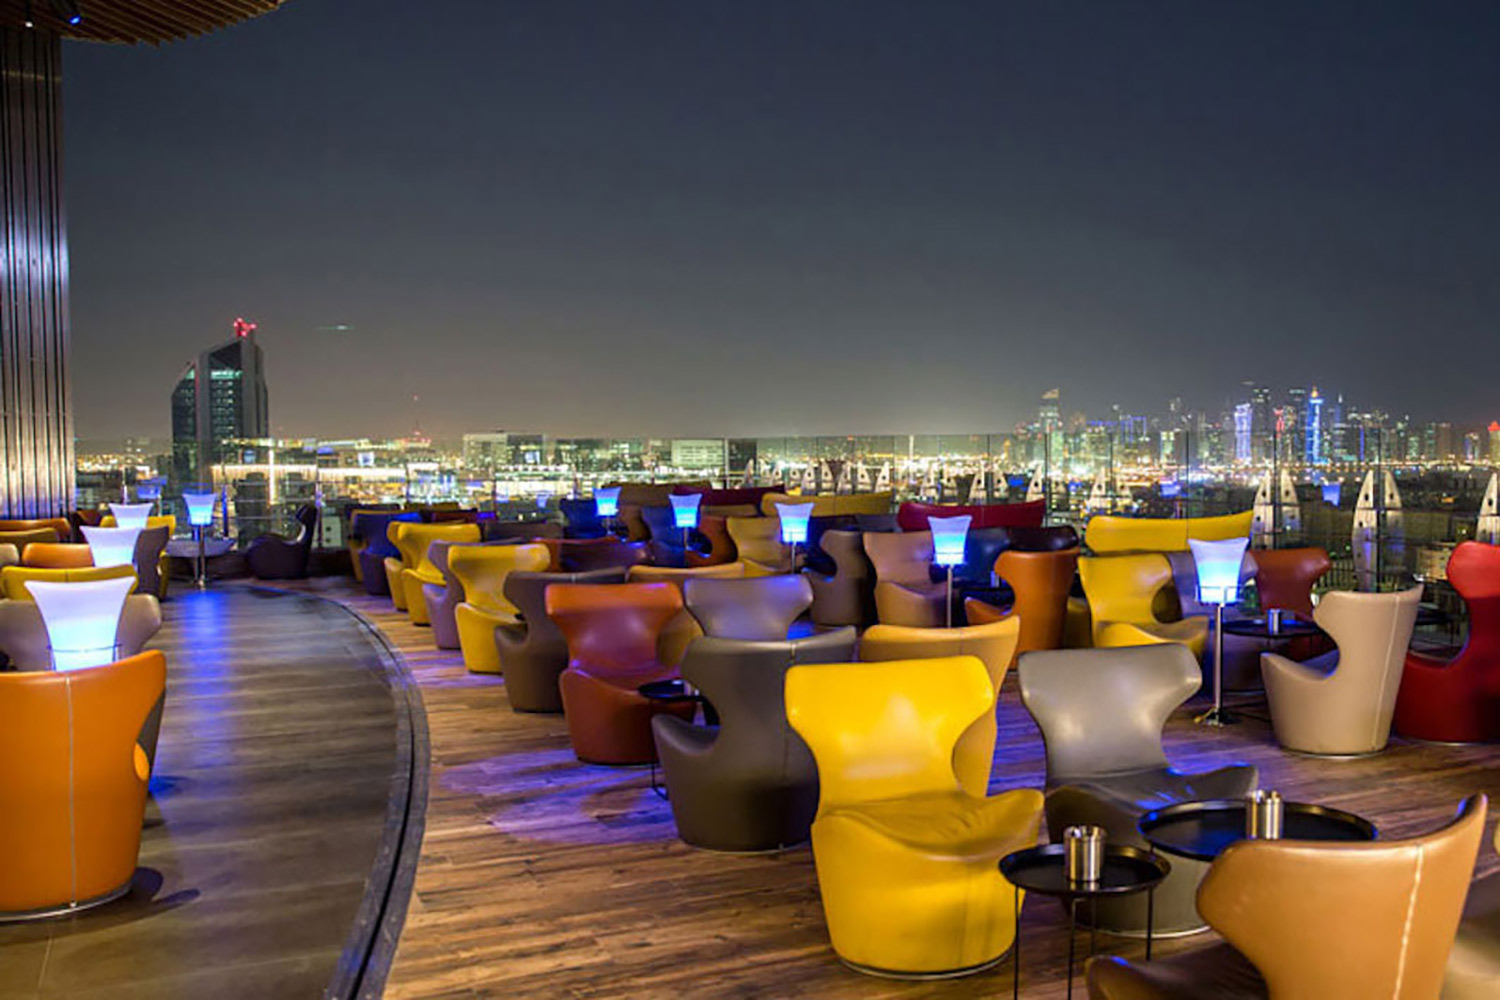 La Cigale, Doha's newest luxury hotel. WSDG performed a full acoustic makeover. Rooftop Bar 4 Night